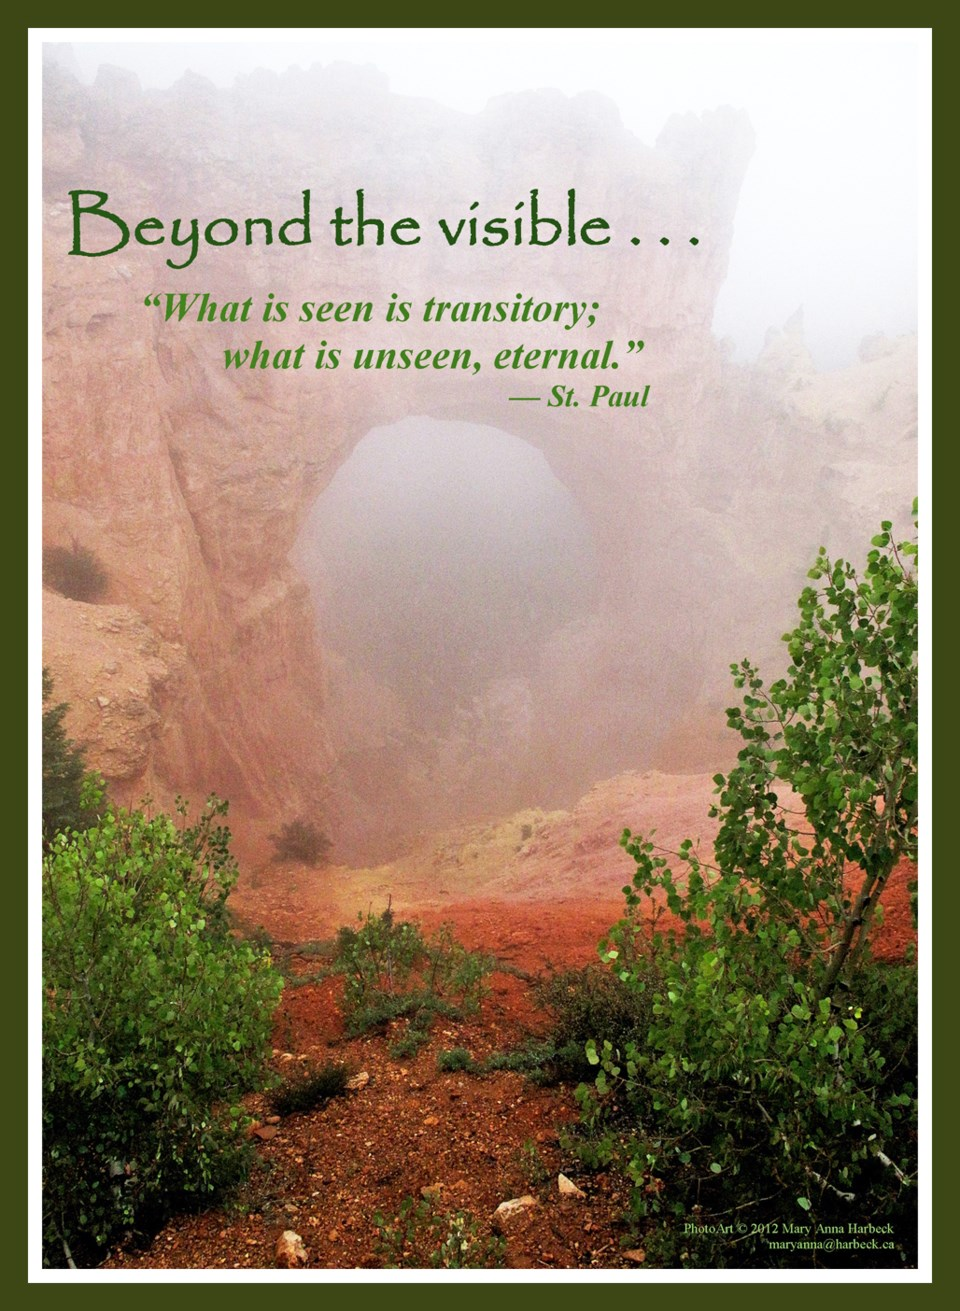 Collage-WH-BryceCanyon-BeyondTheVisible-drktxt-v2-3px4pp-brt-frm